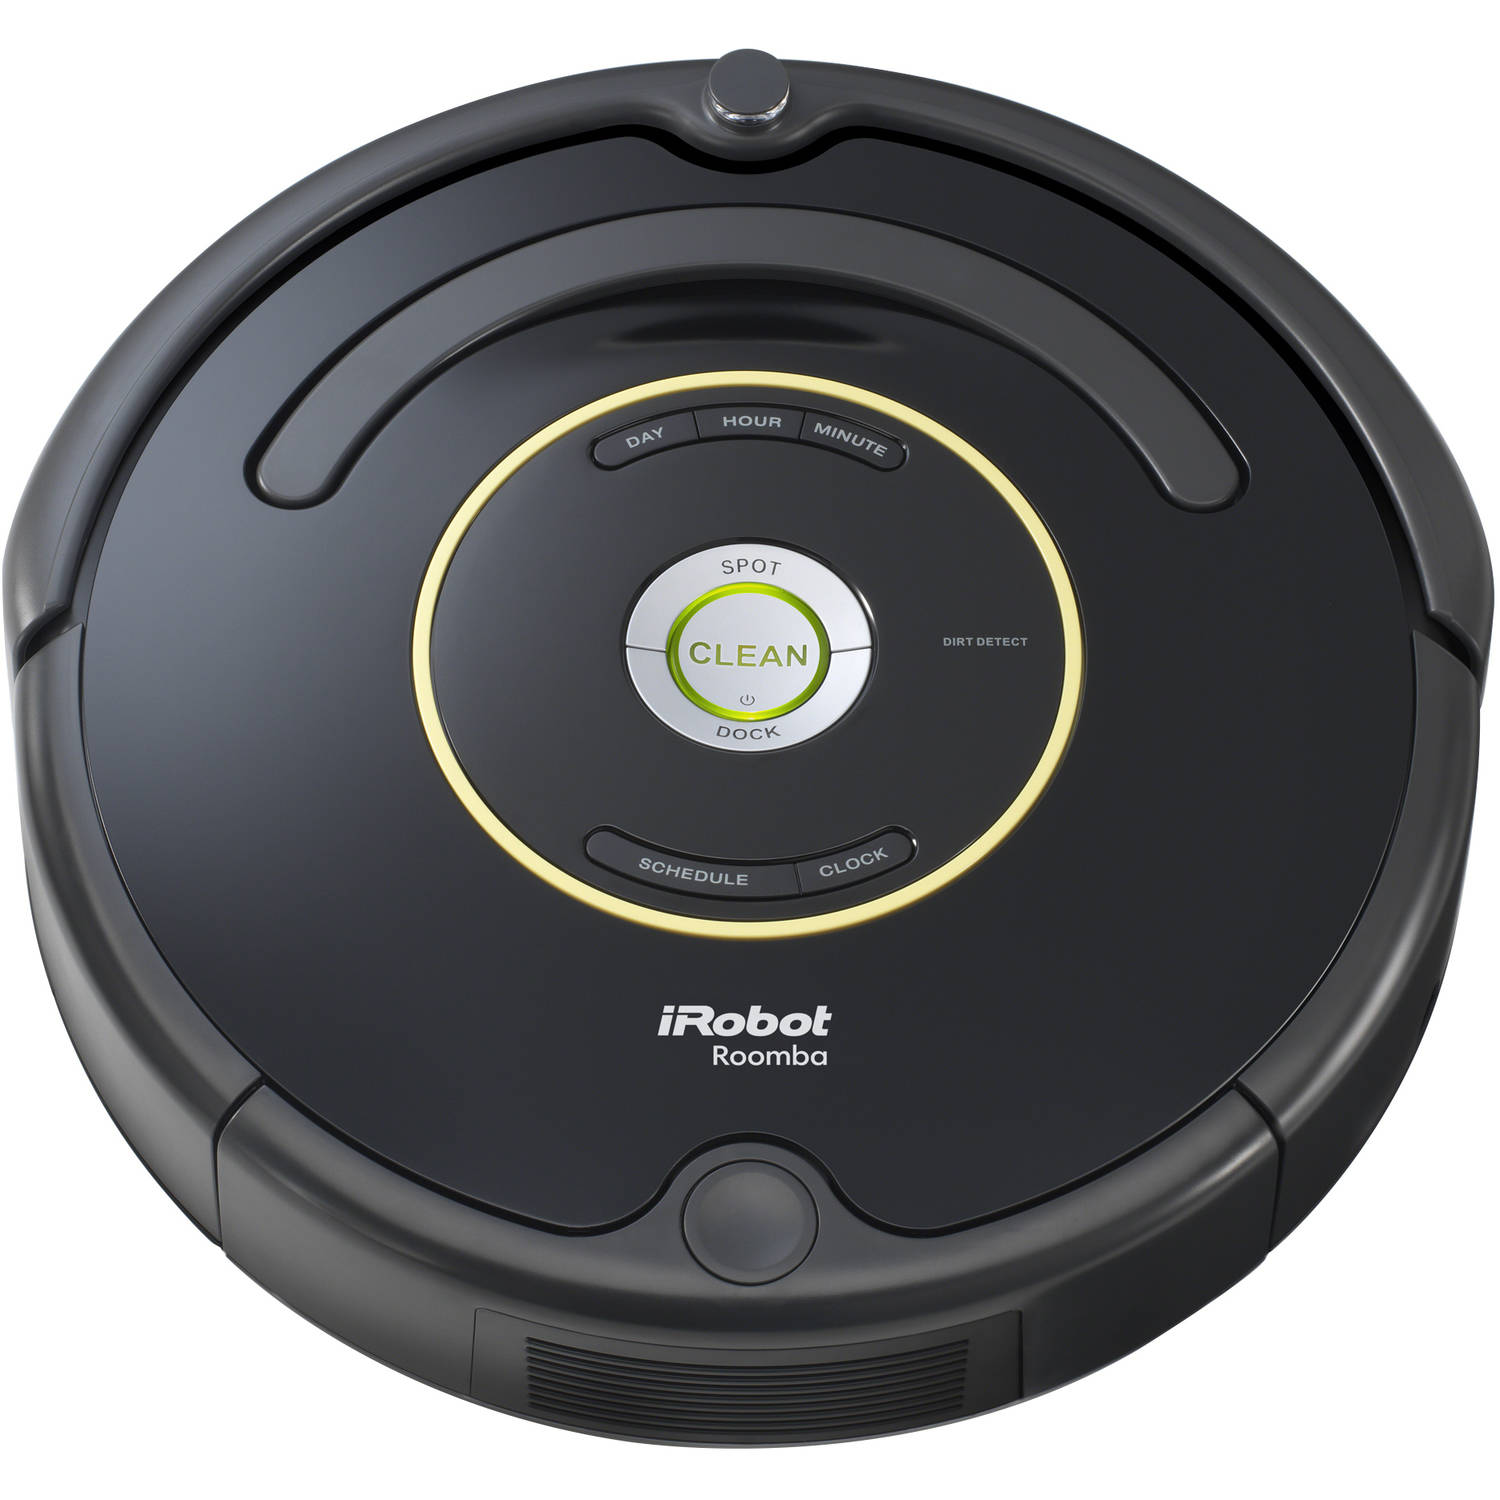 Don't buy a Roomba before reading these reviews.